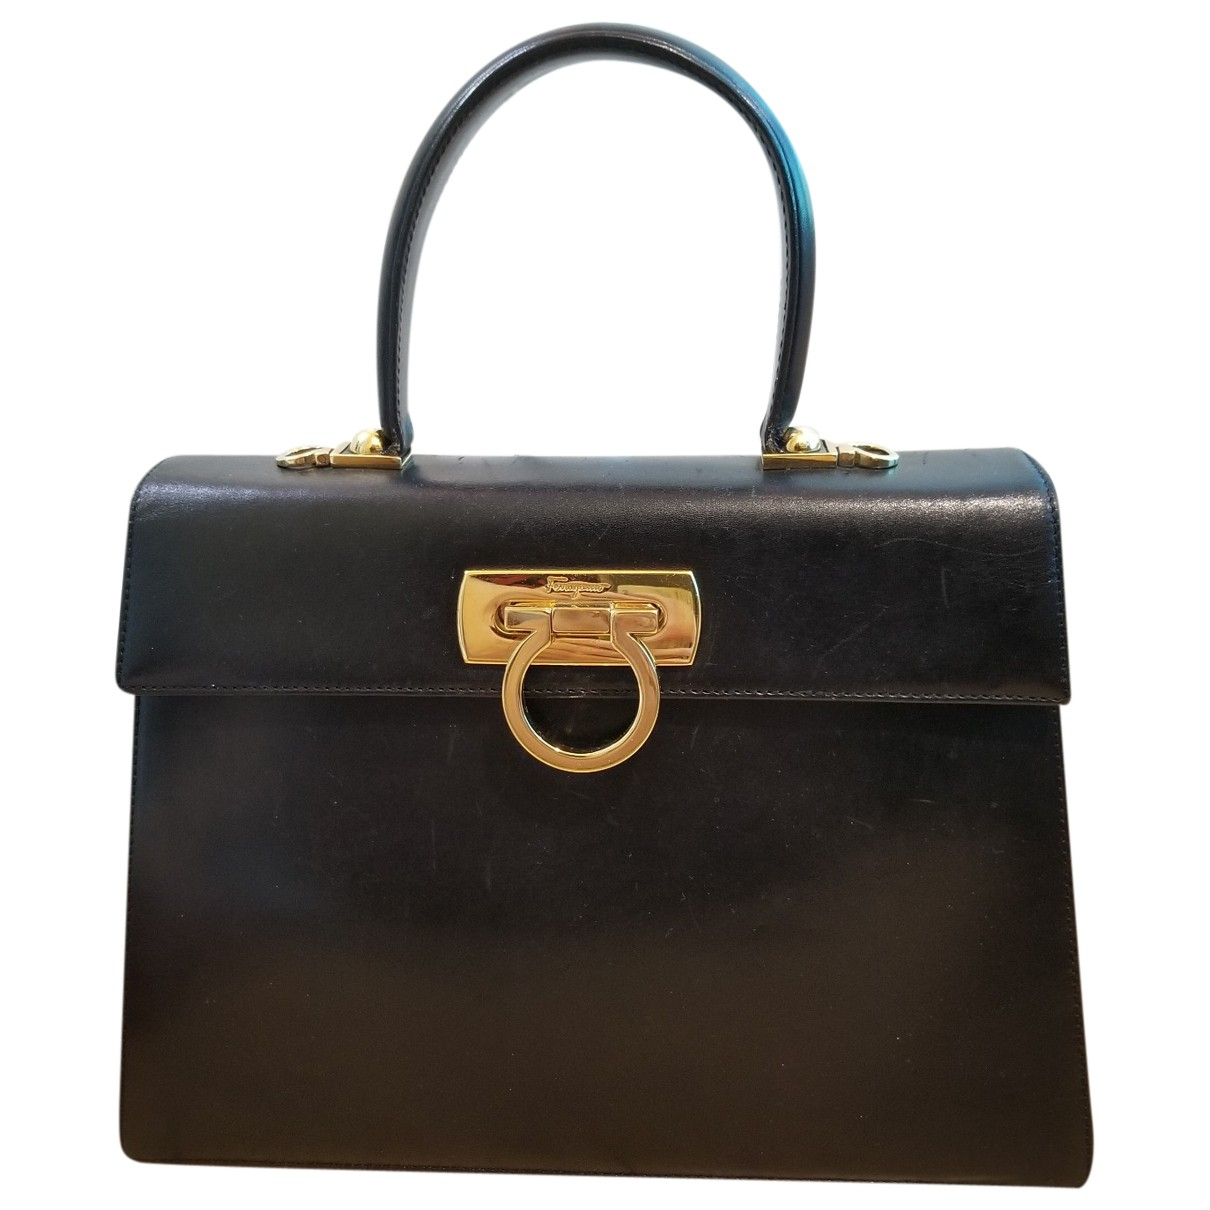 Salvatore Ferragamo \N Black Leather handbag for Women \N